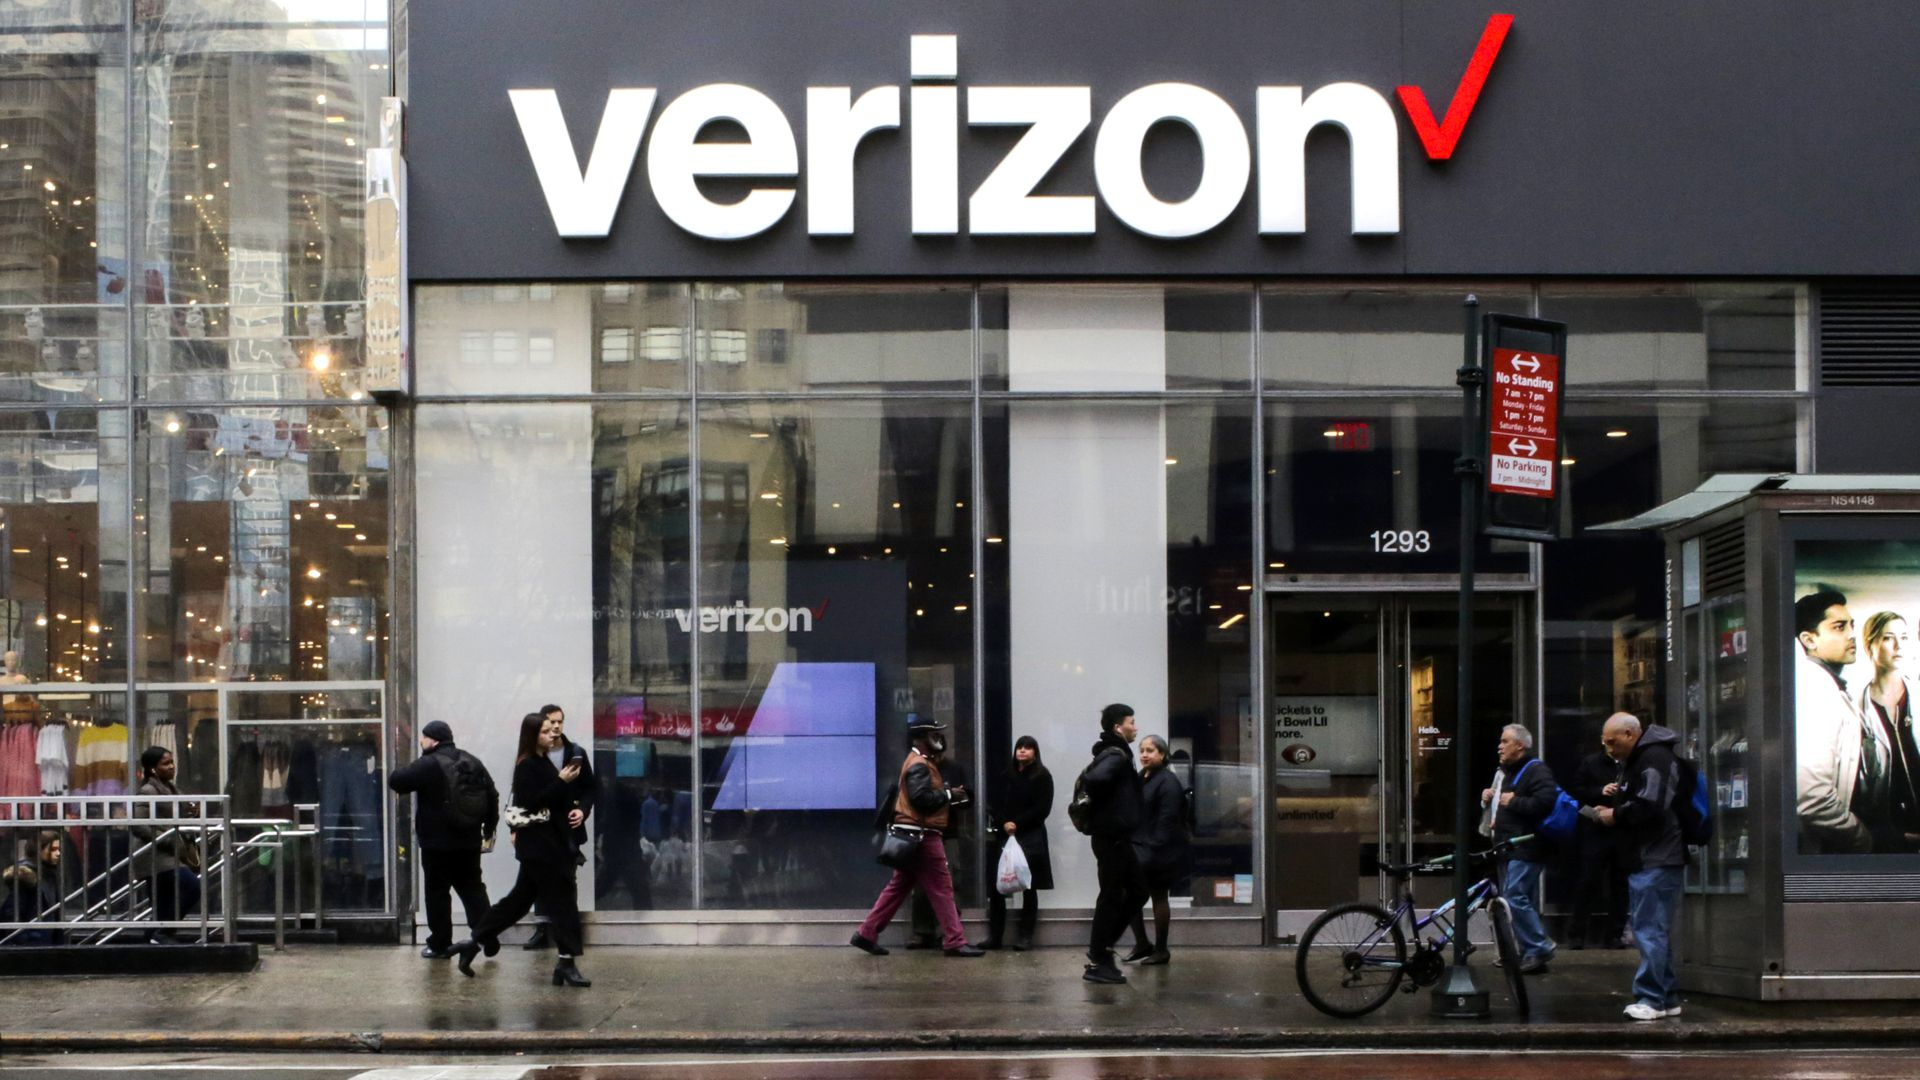 Verizon wireless phone store.